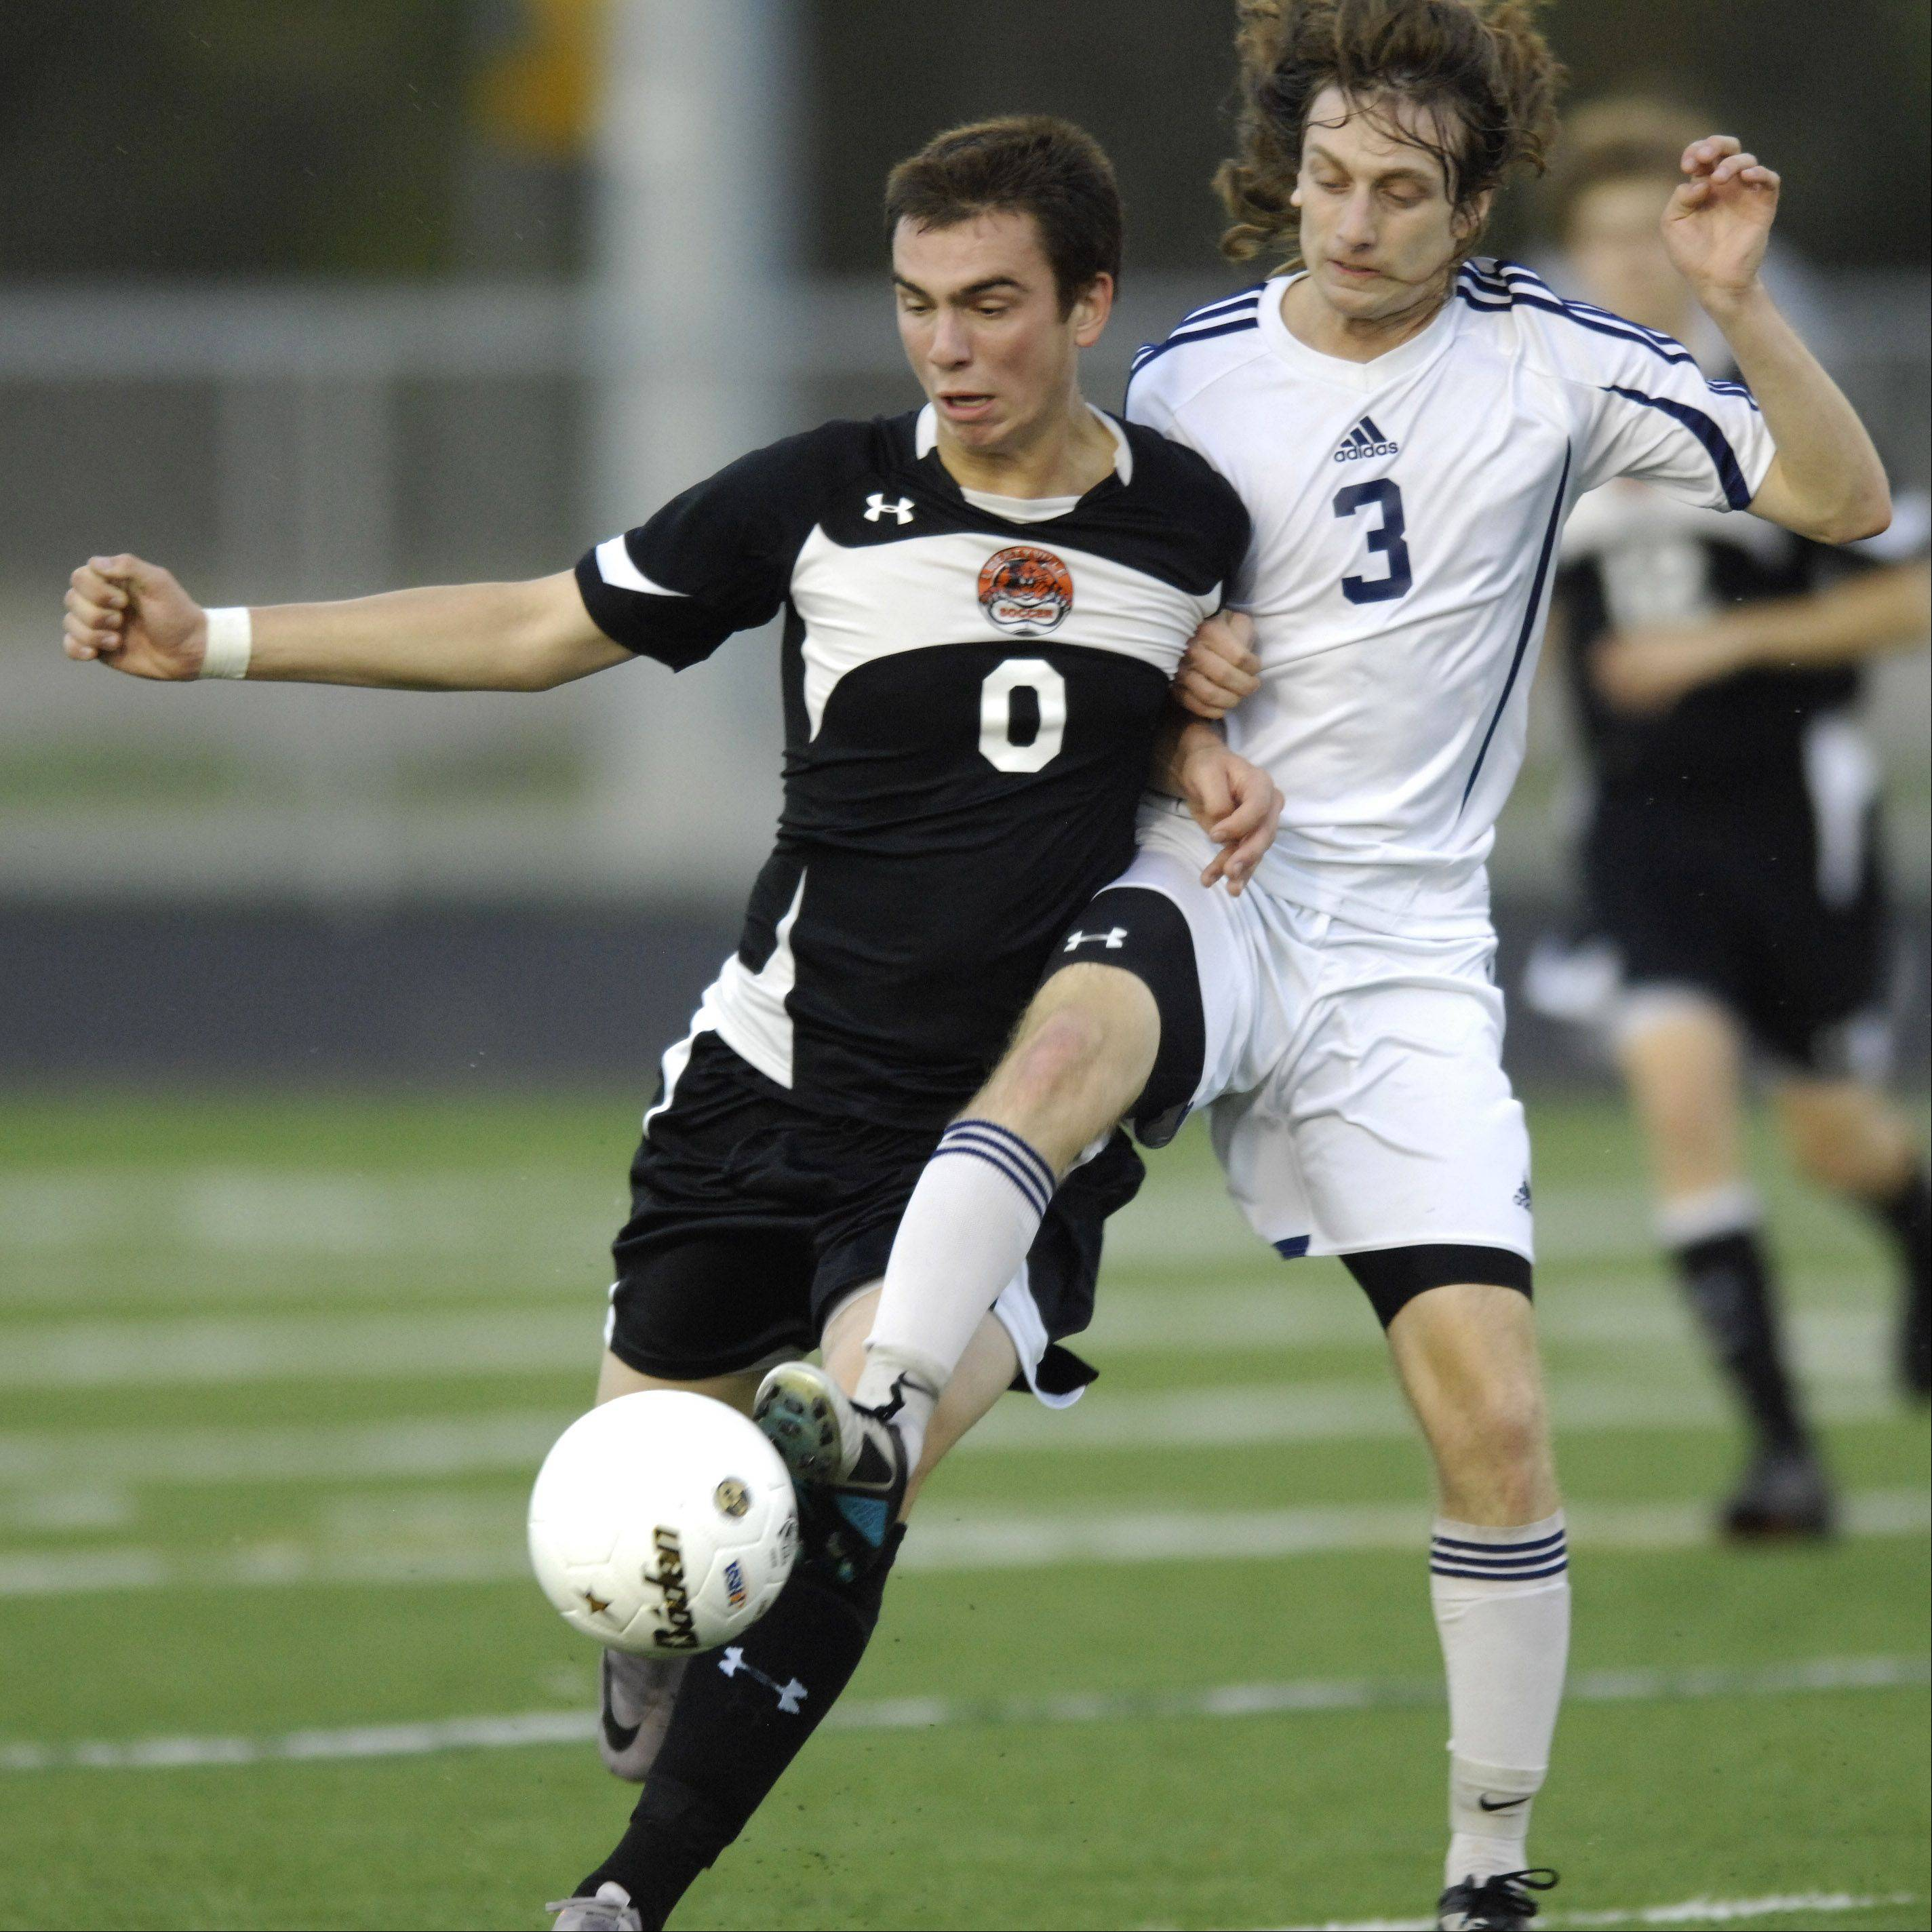 Libertyville's Austin Bitta, left, and Prospect's Avi Chitman make contact as they pursue the ball during Tuesday's sectional semifinal at Conant.